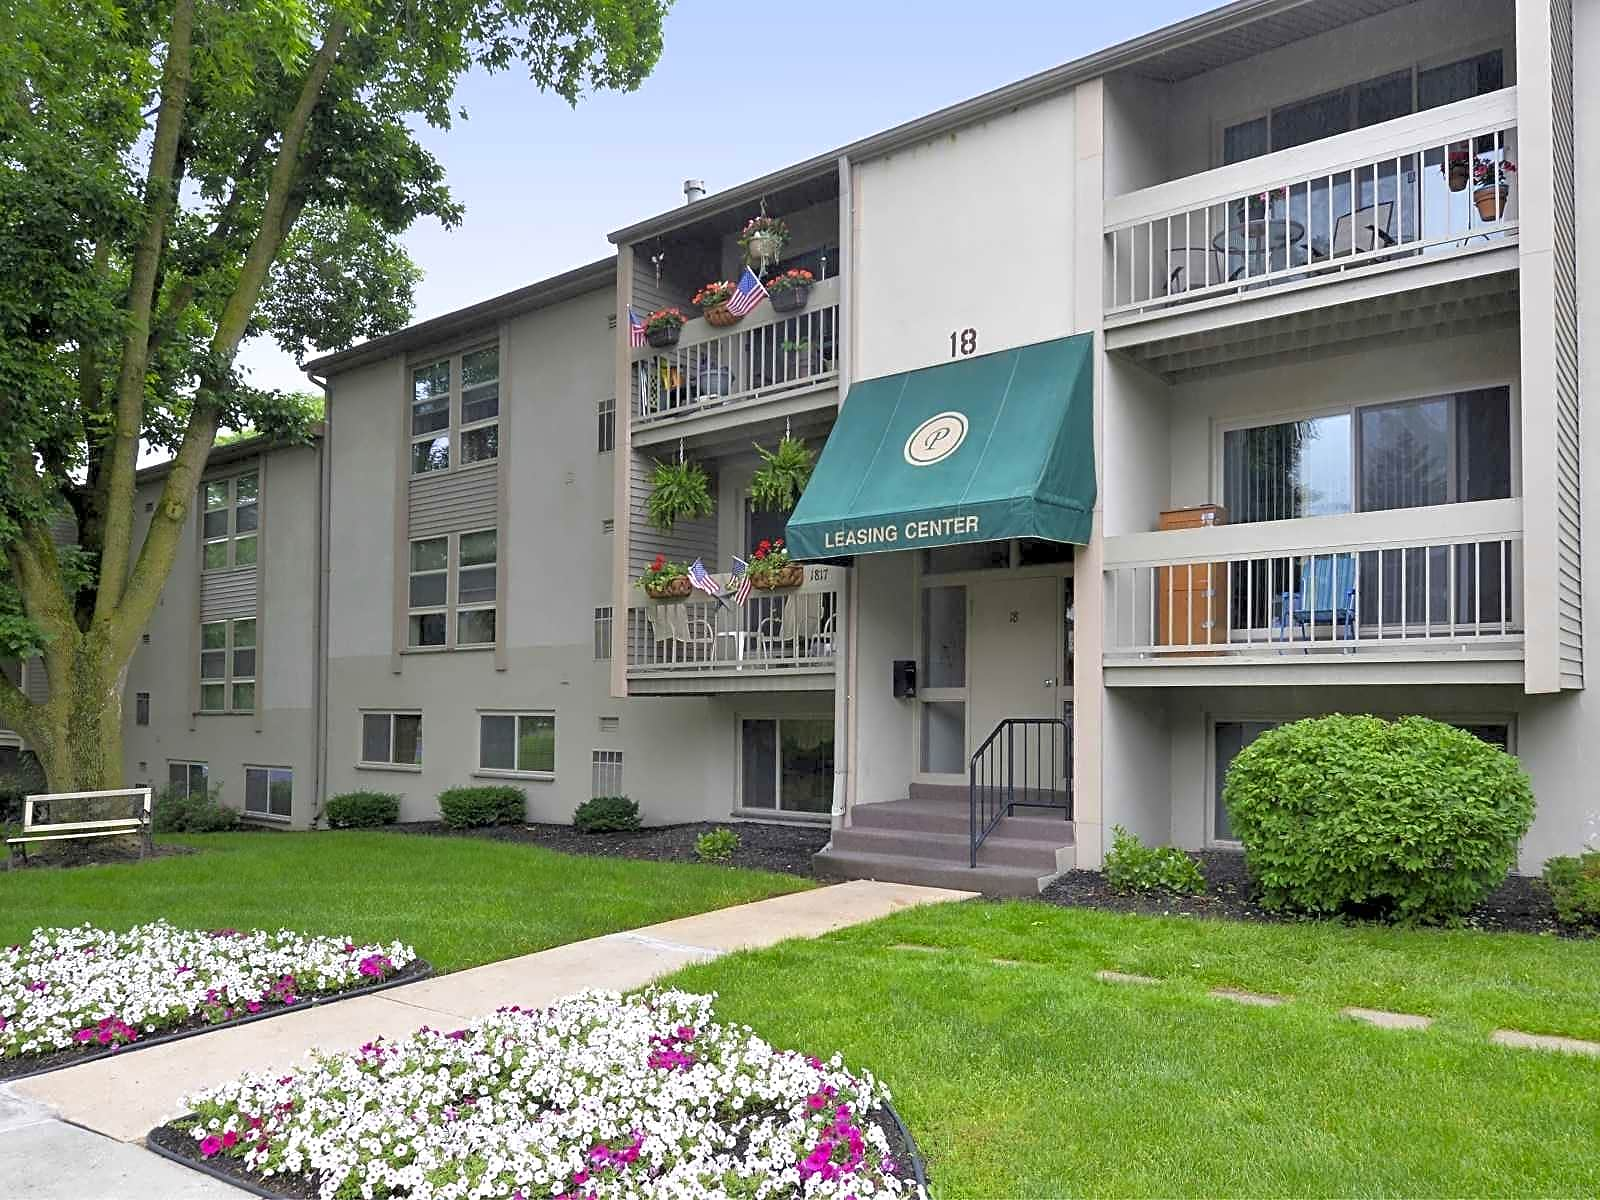 Apartments Near Lebanon Valley Plaza Apartments for Lebanon Valley College Students in Annville, PA